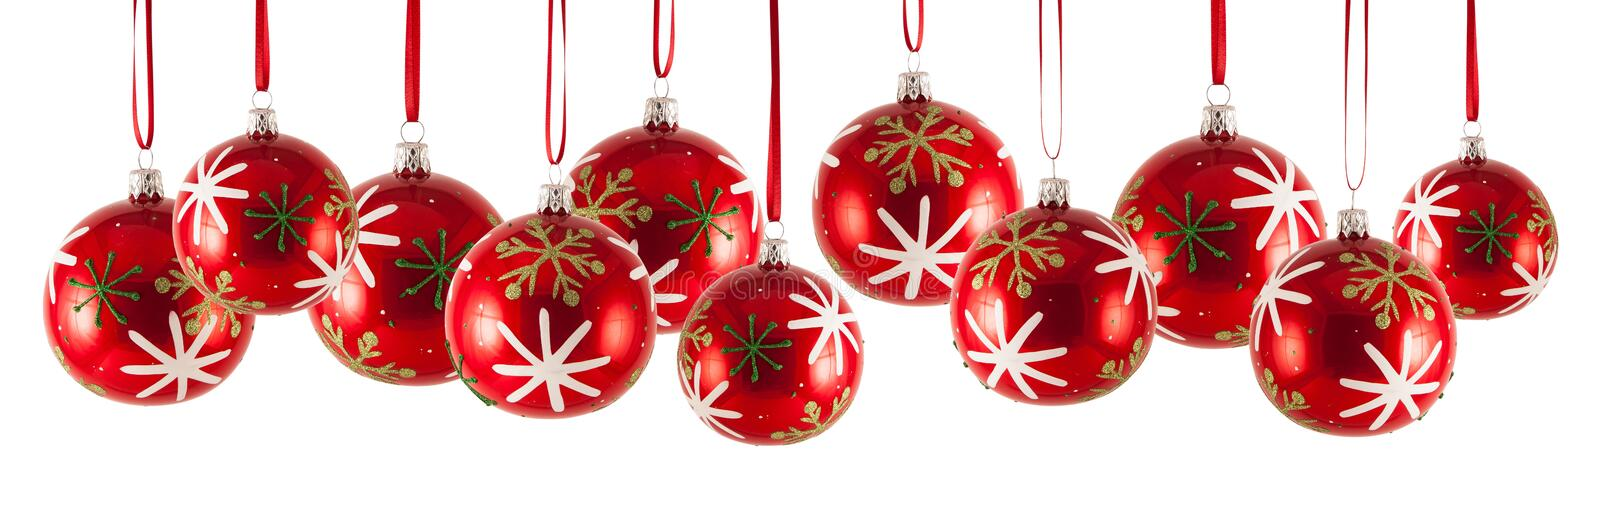 Christmas baubles in a row isolated on white background royalty free stock photos